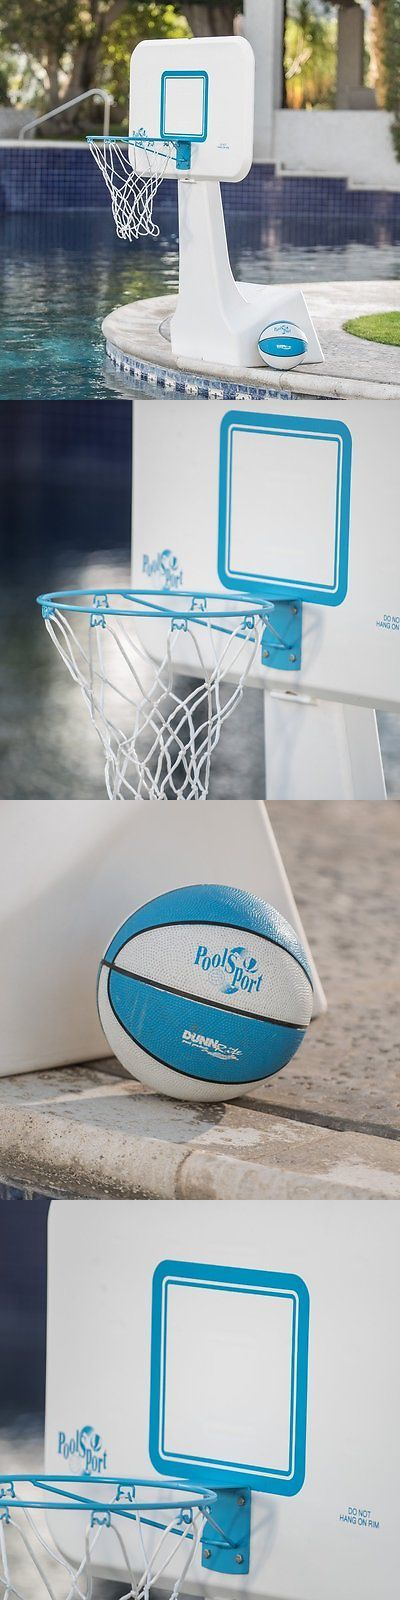 Toys and Games 181056: Pool Basketball Hoop Net Game Goal Ball Swimming Portable System Backboard Toy -> BUY IT NOW ONLY: $154.95 on eBay!